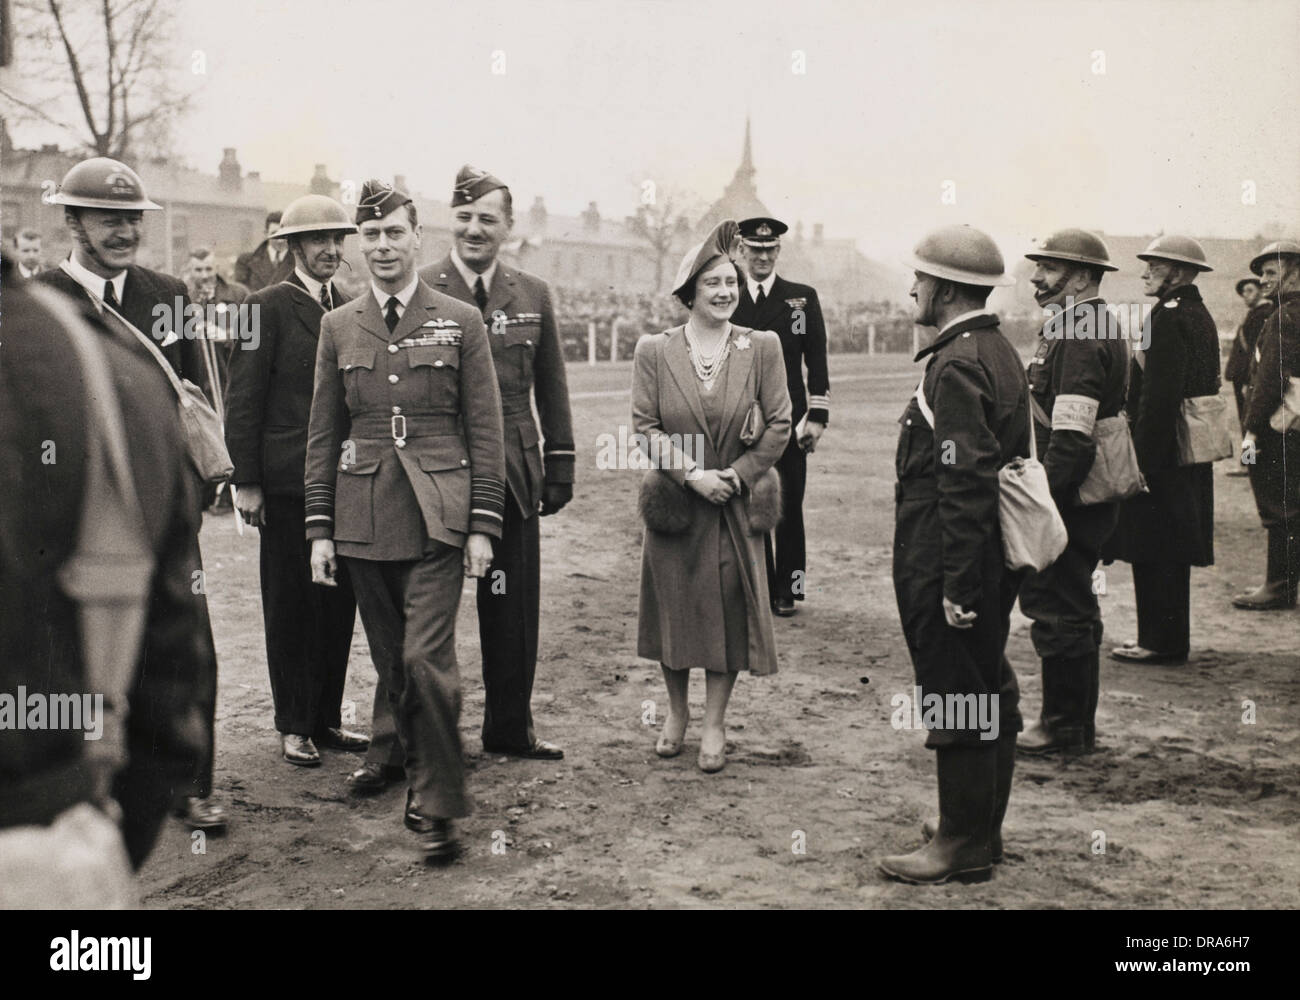 Royal visit to ammunition factory - Stock Image